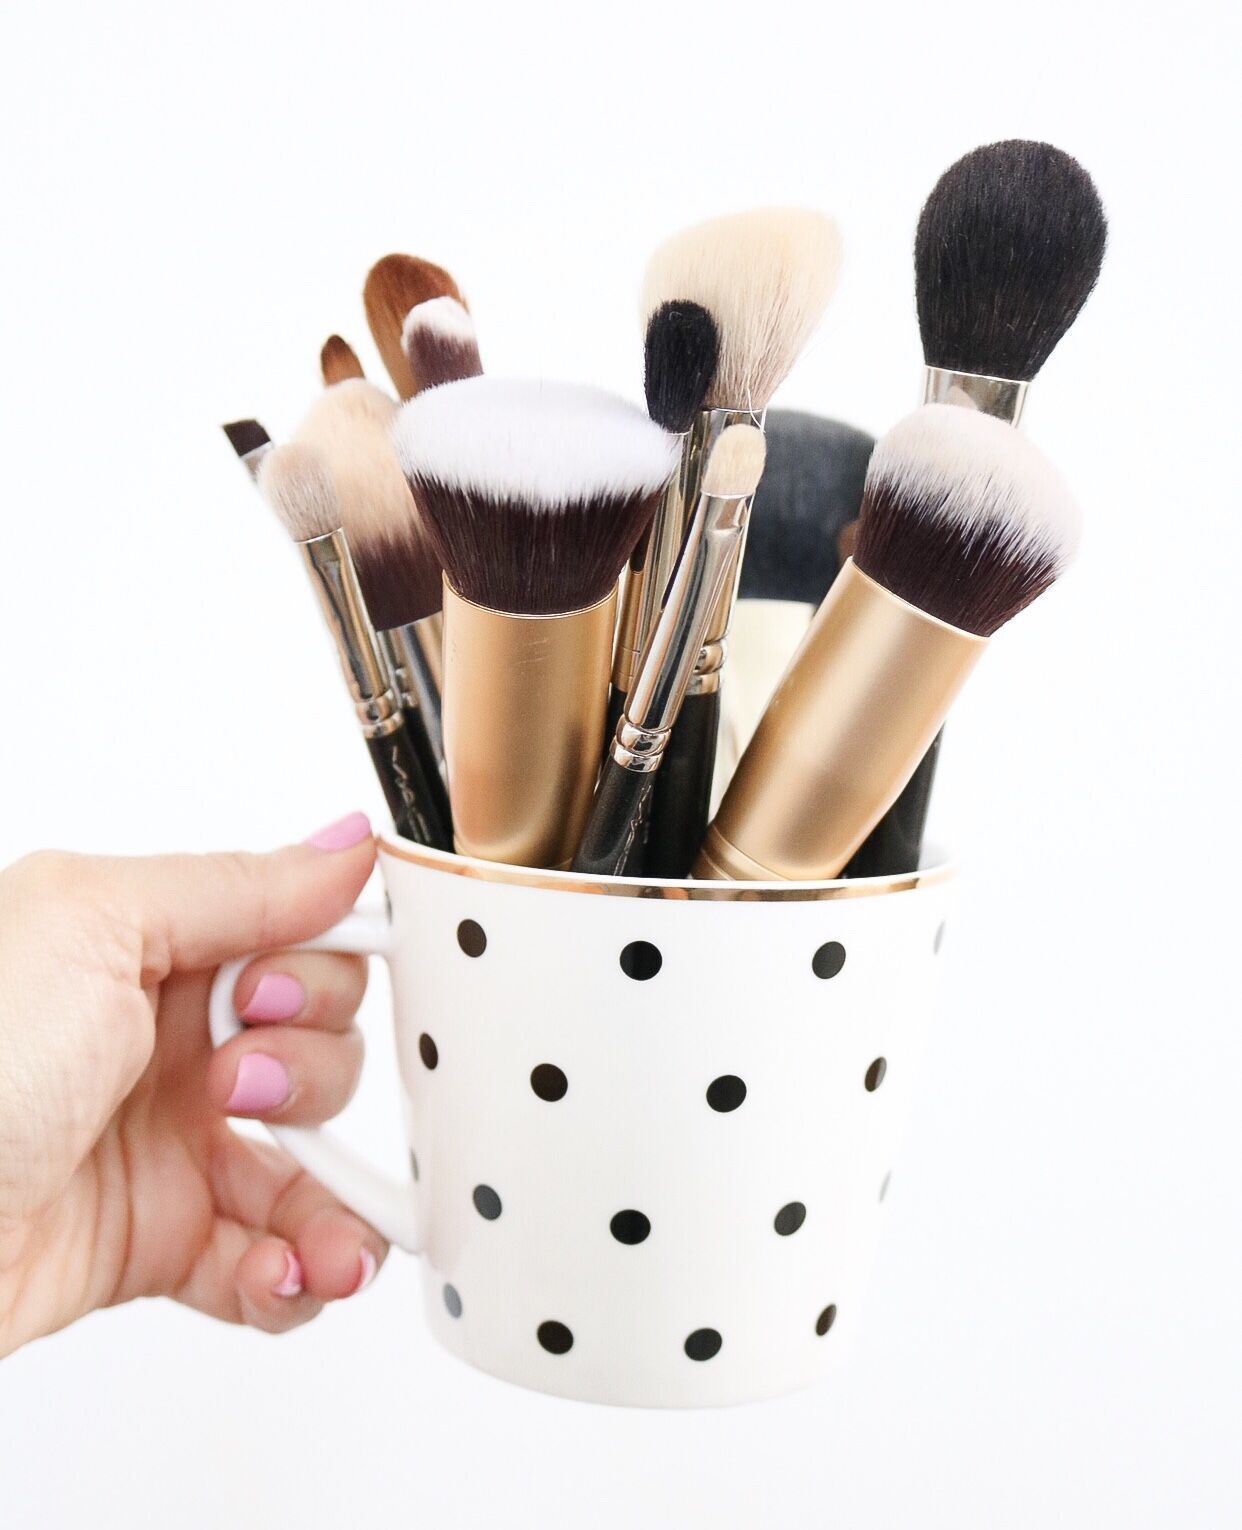 Top 11 Must Have Makeup Brushes Eye makeup brushes